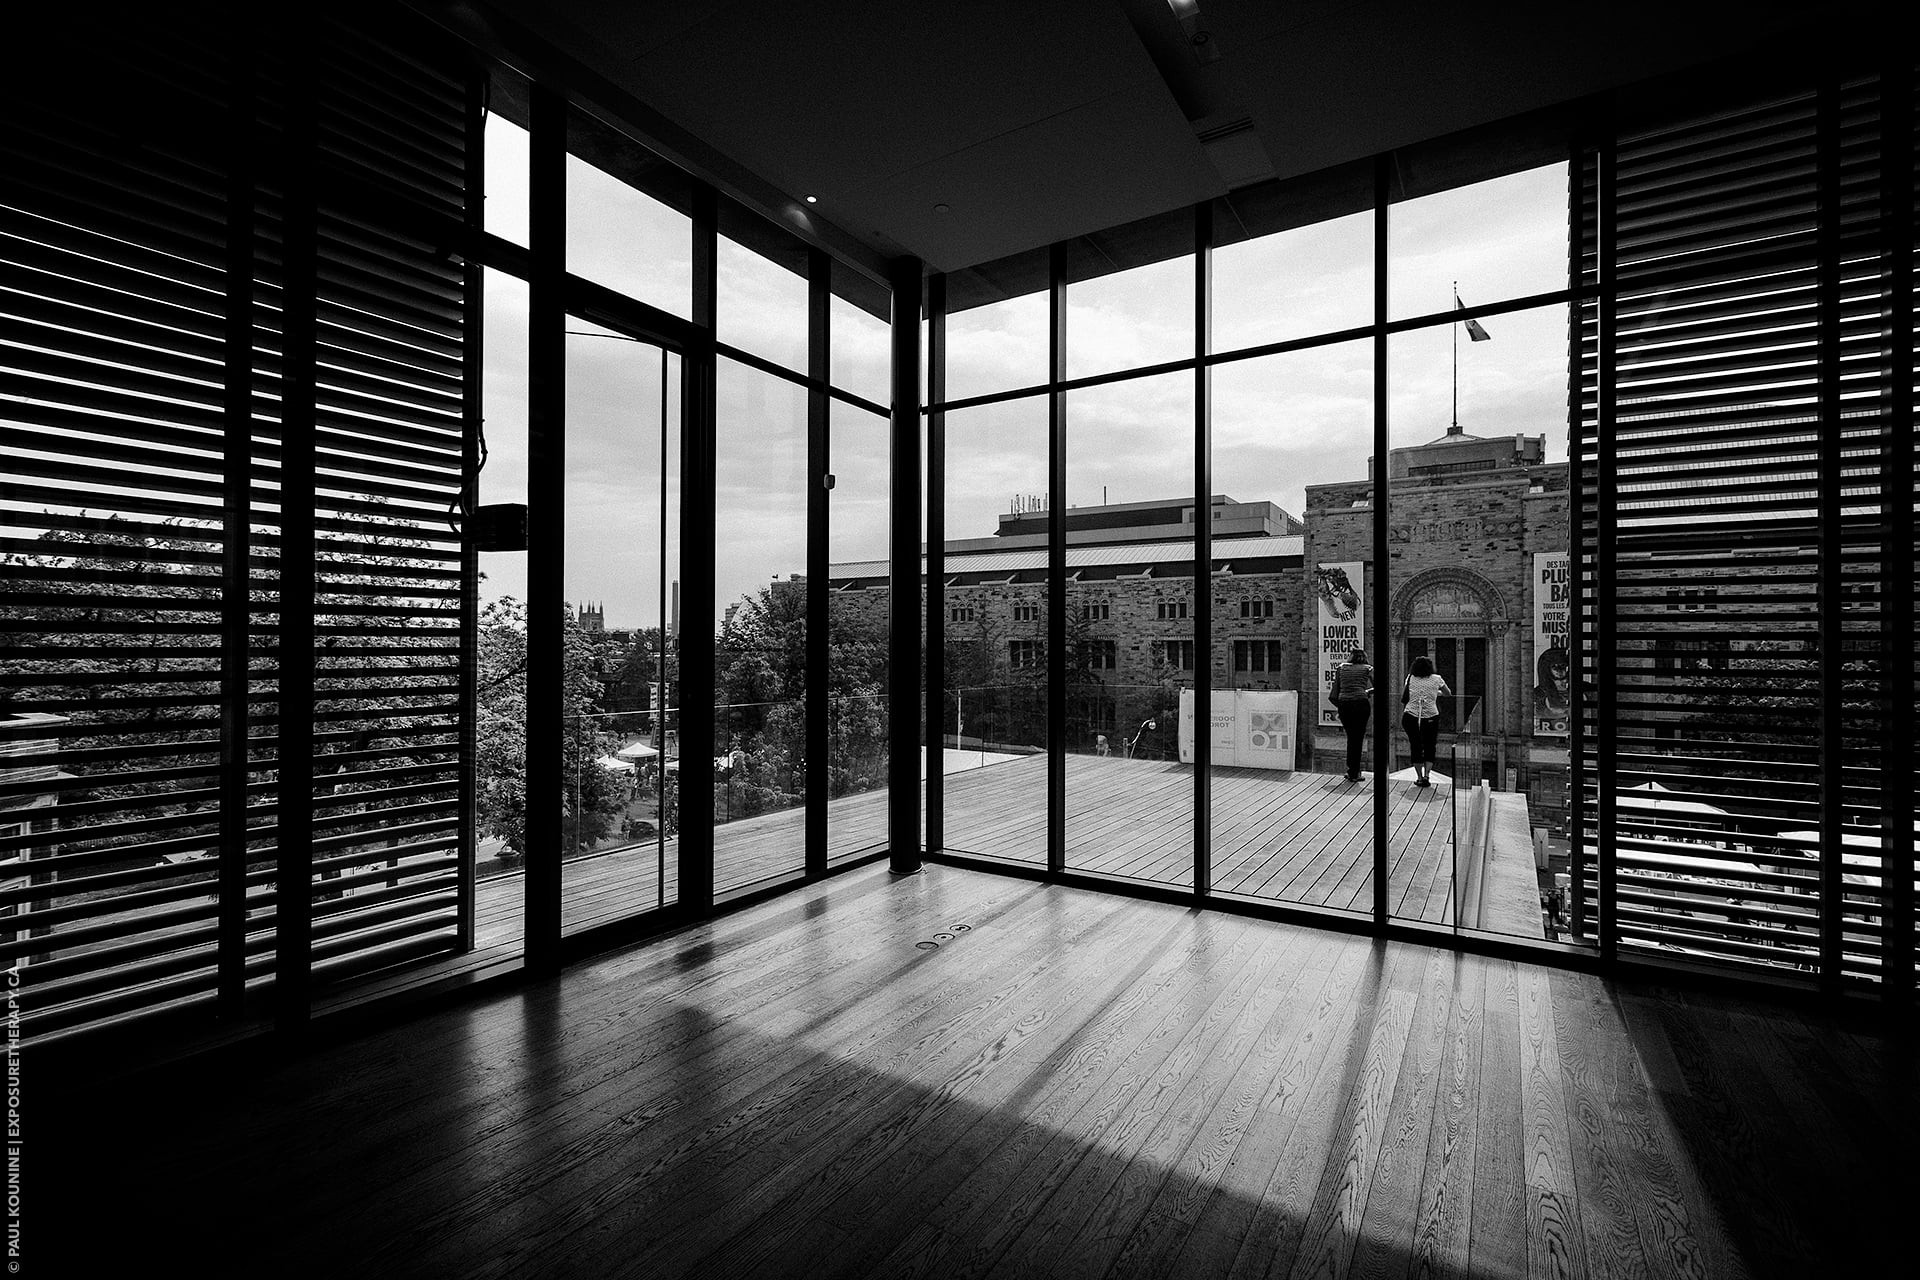 16 mm super wide-angle lens on full-frame camera, Gardiner Museum architecture in Toronto